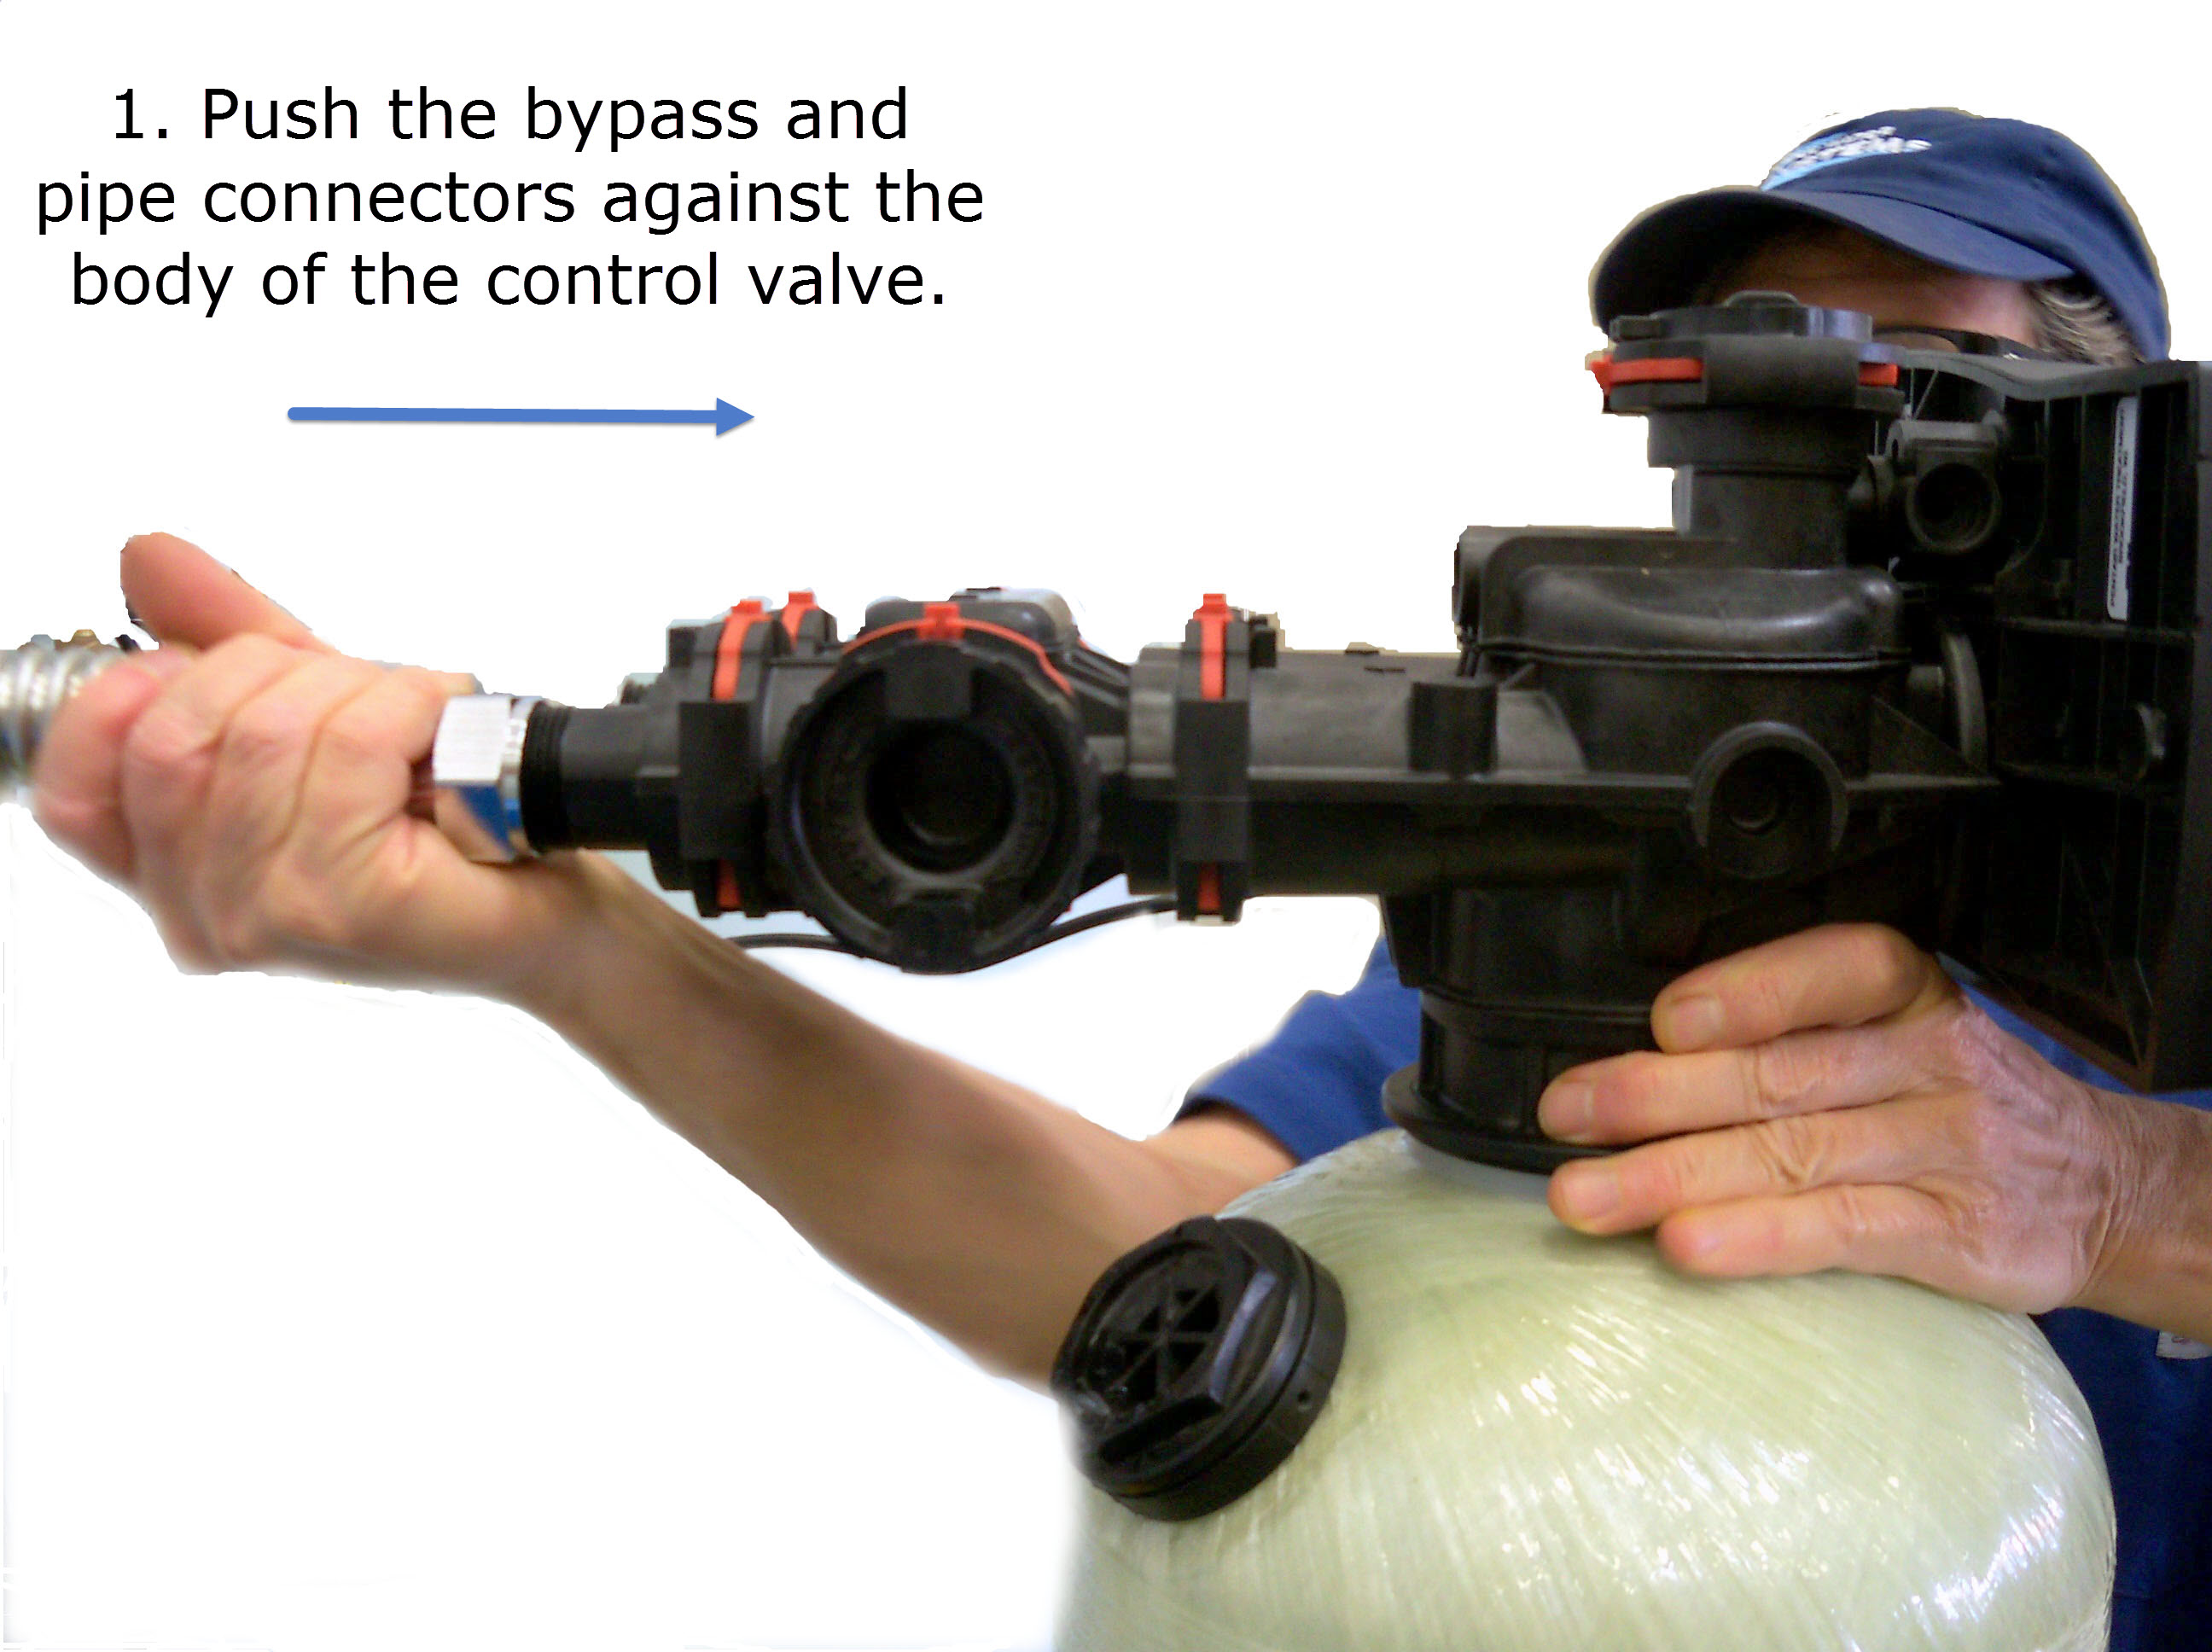 How to Remove Red Clips from Fleck 7000 Control Valves Without Breaking Them